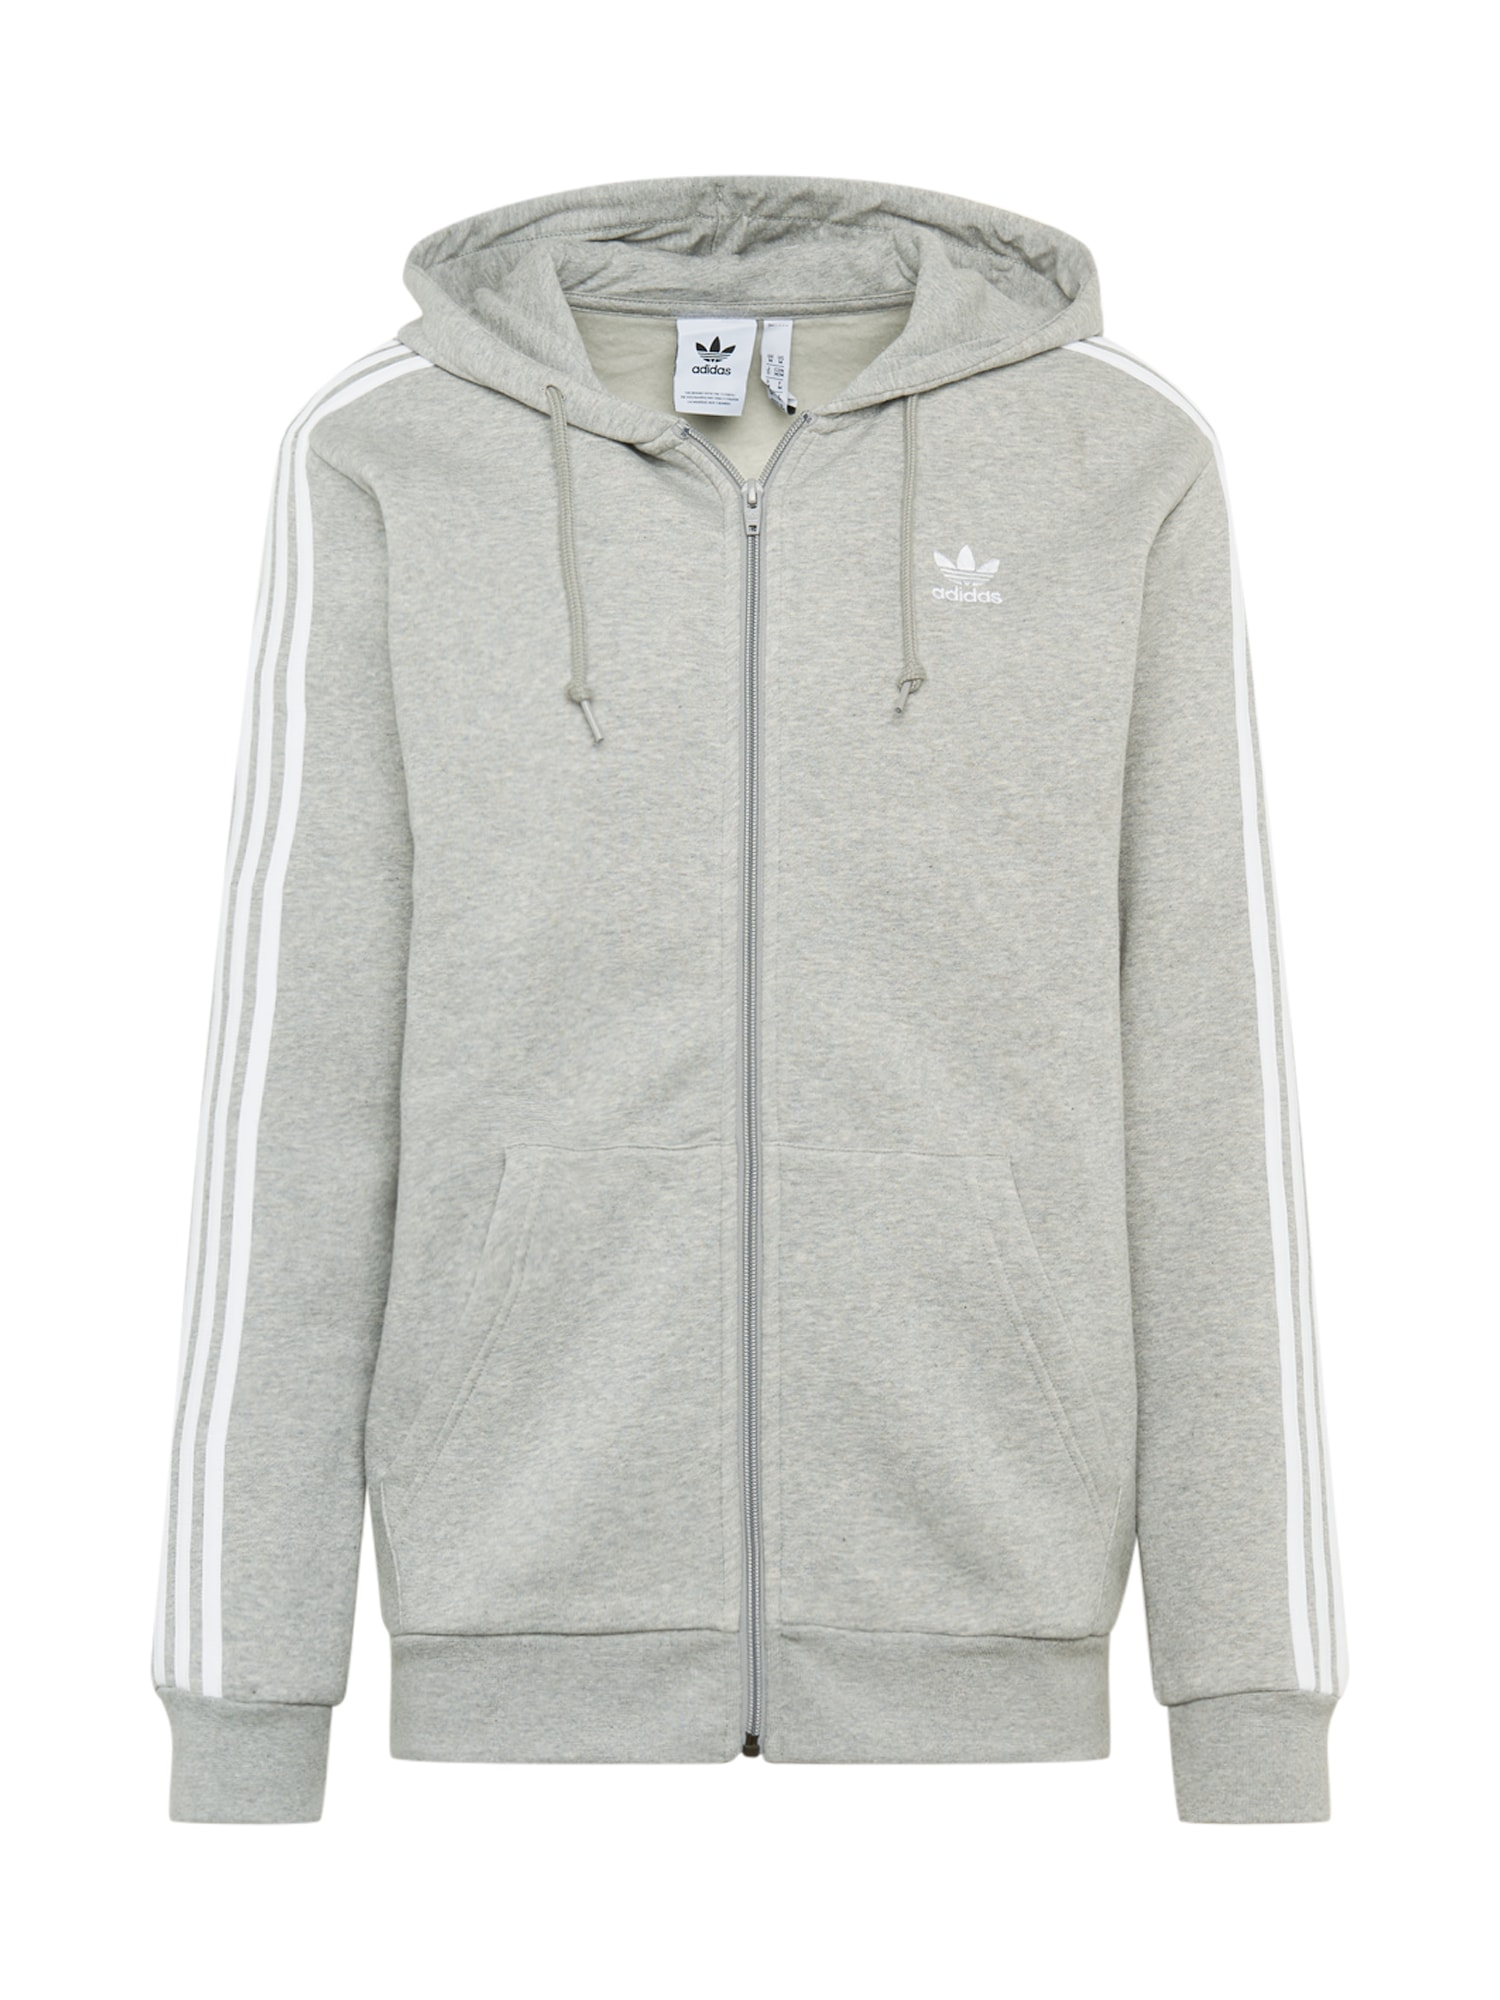 ADIDAS ORIGINALS Džemperis pilka / balta